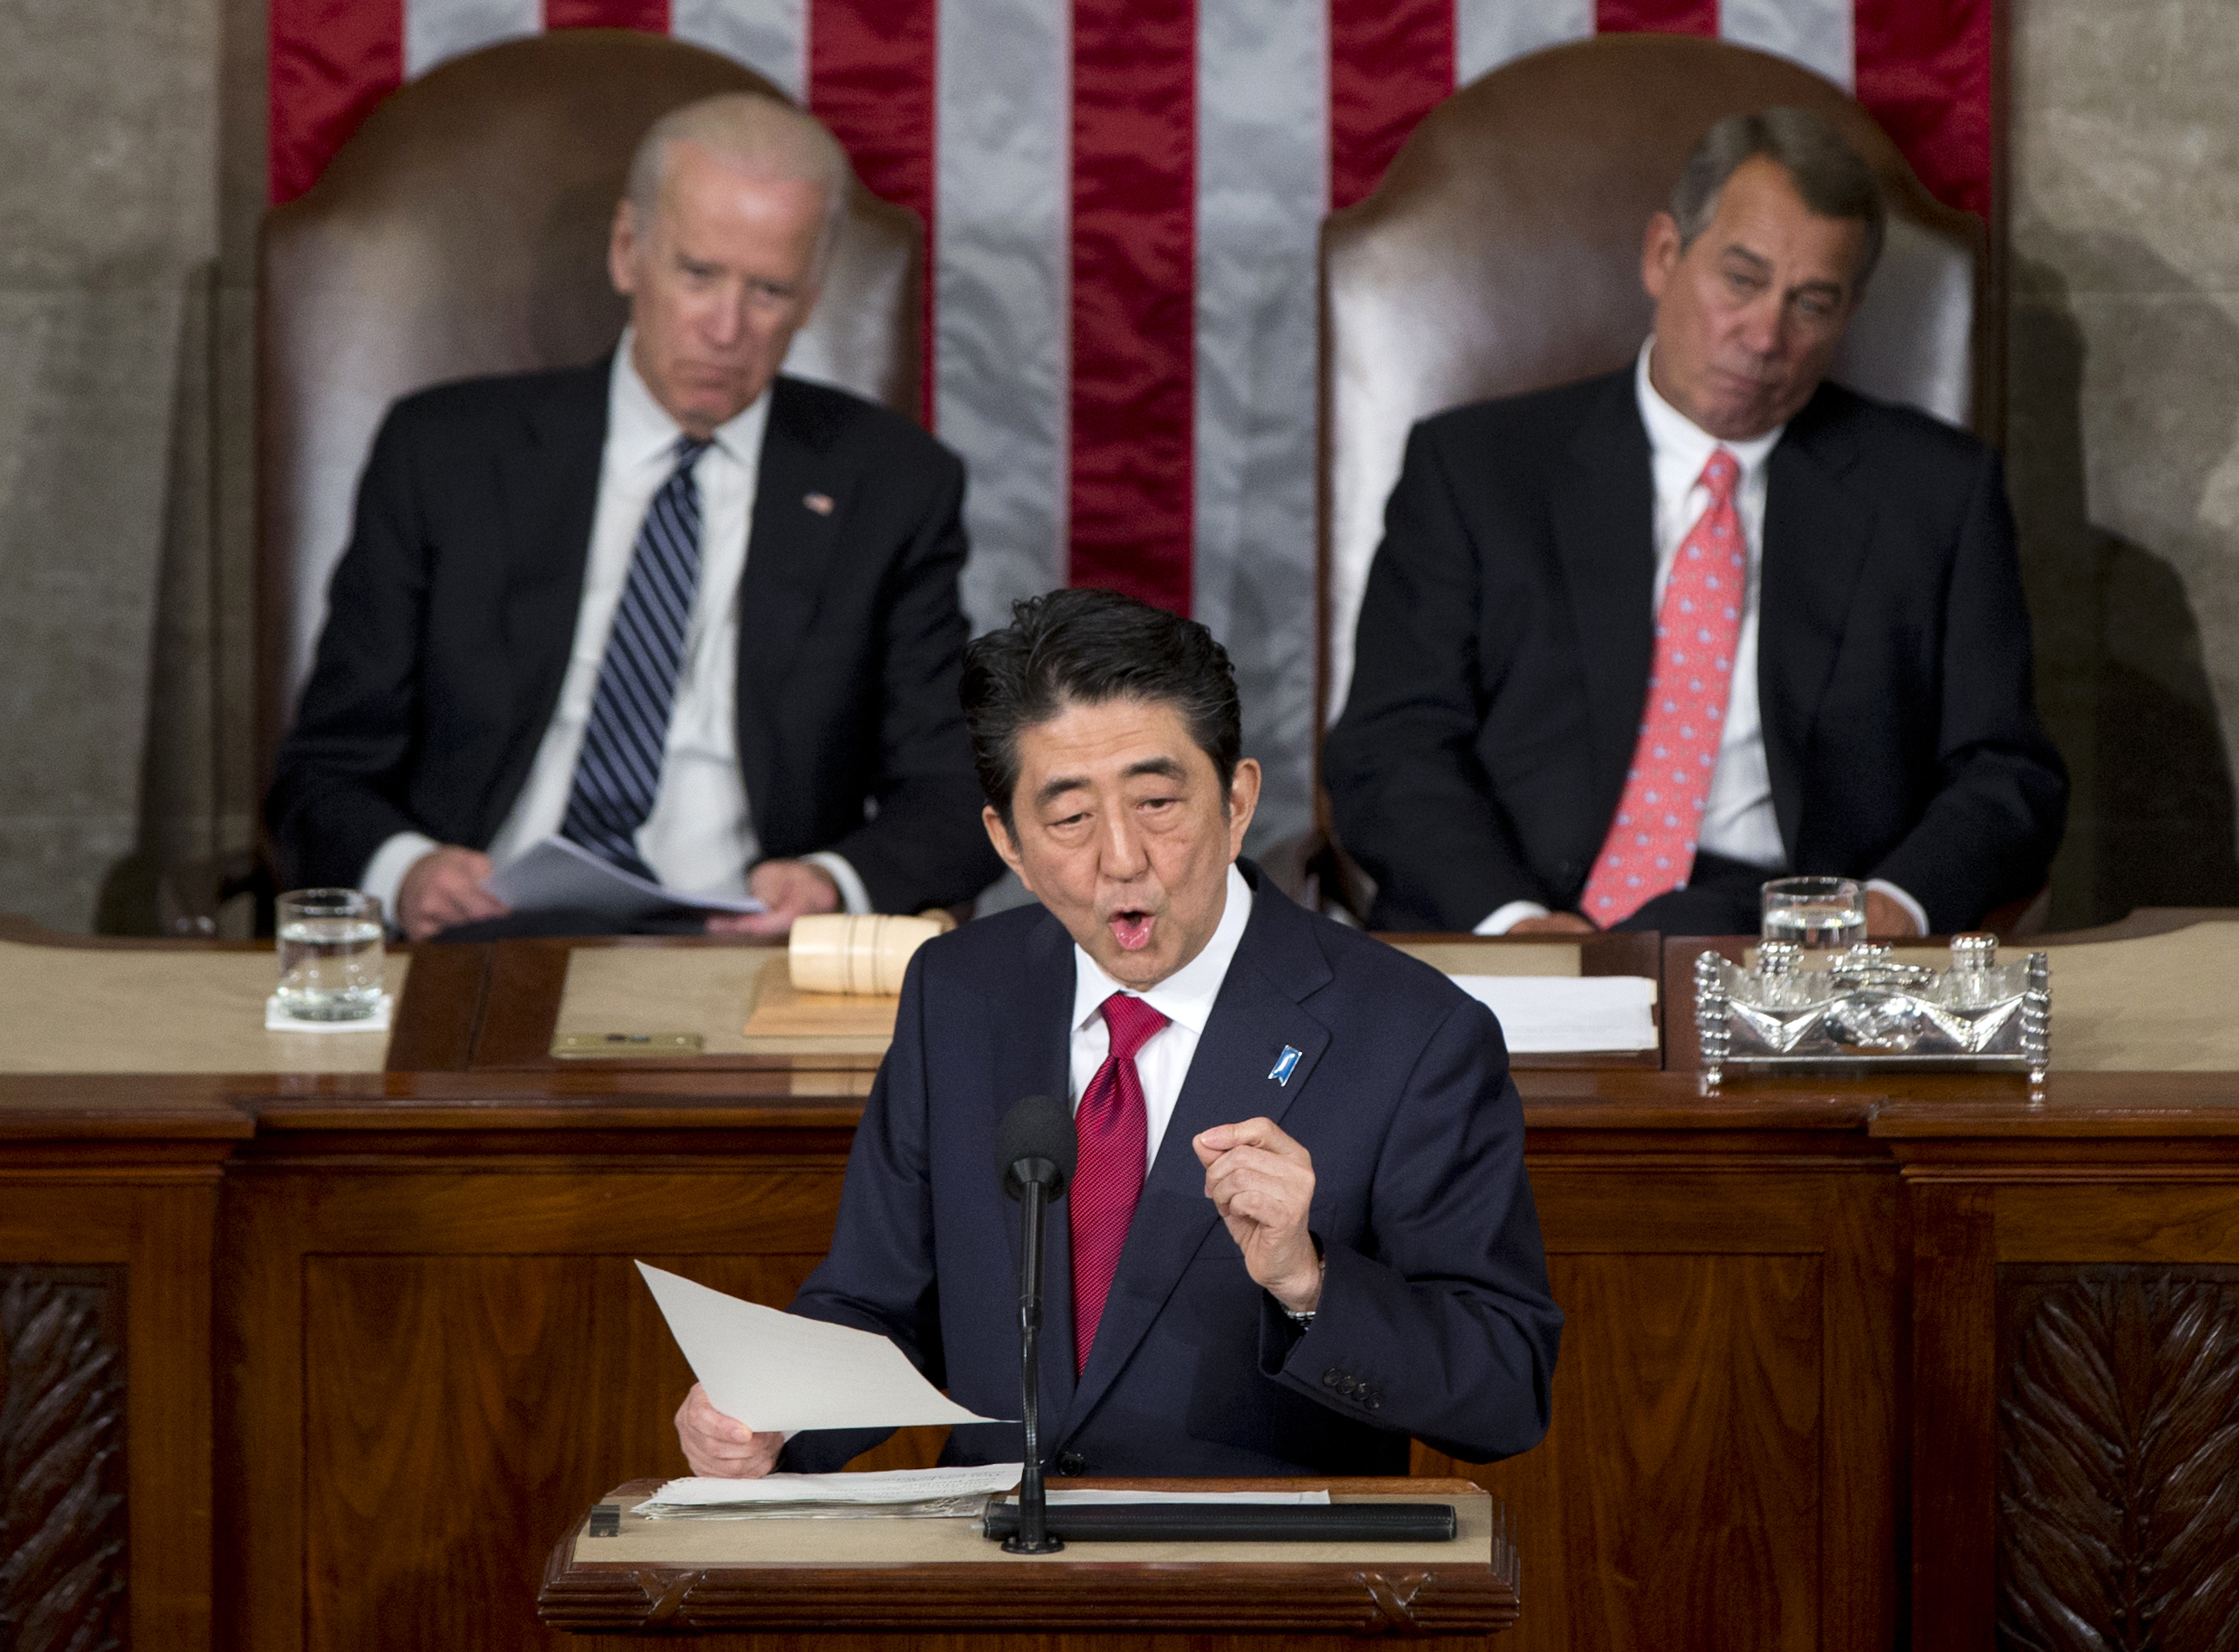 Abe's Successor and the Future of Japanese-American Relations